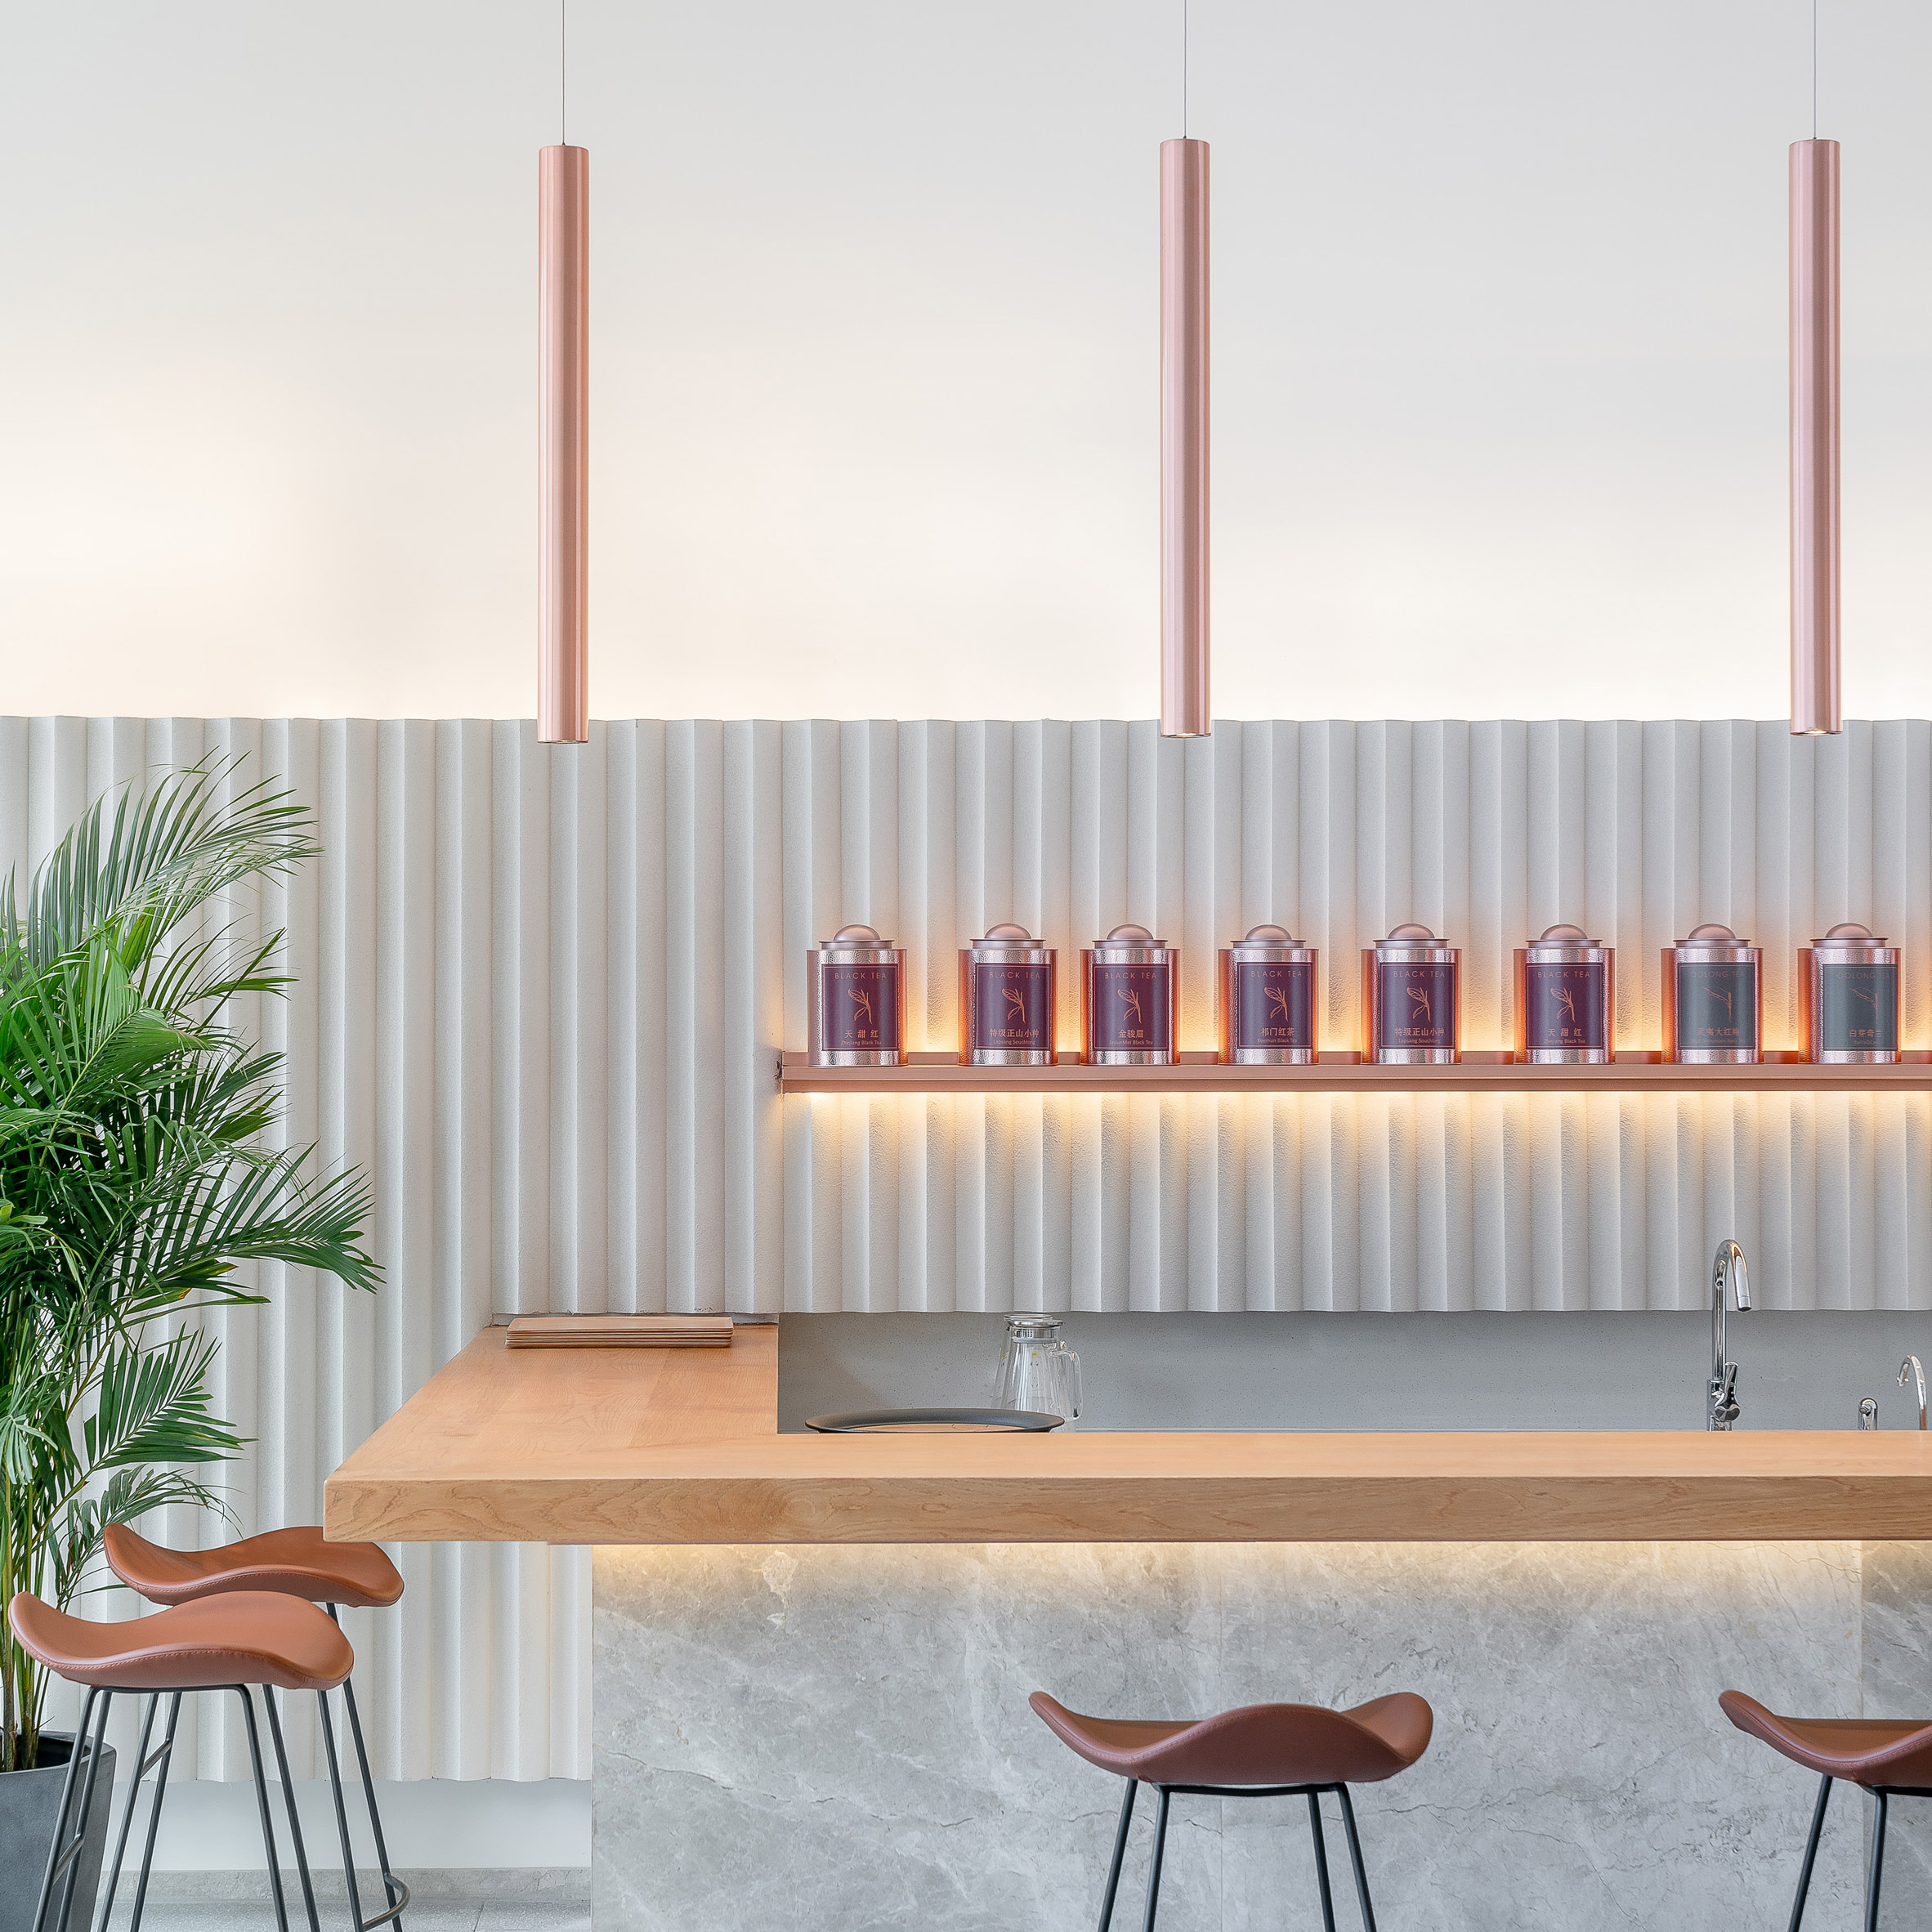 Chinese New Year: Interiors of Genshang restaurant designed by Office Coastline